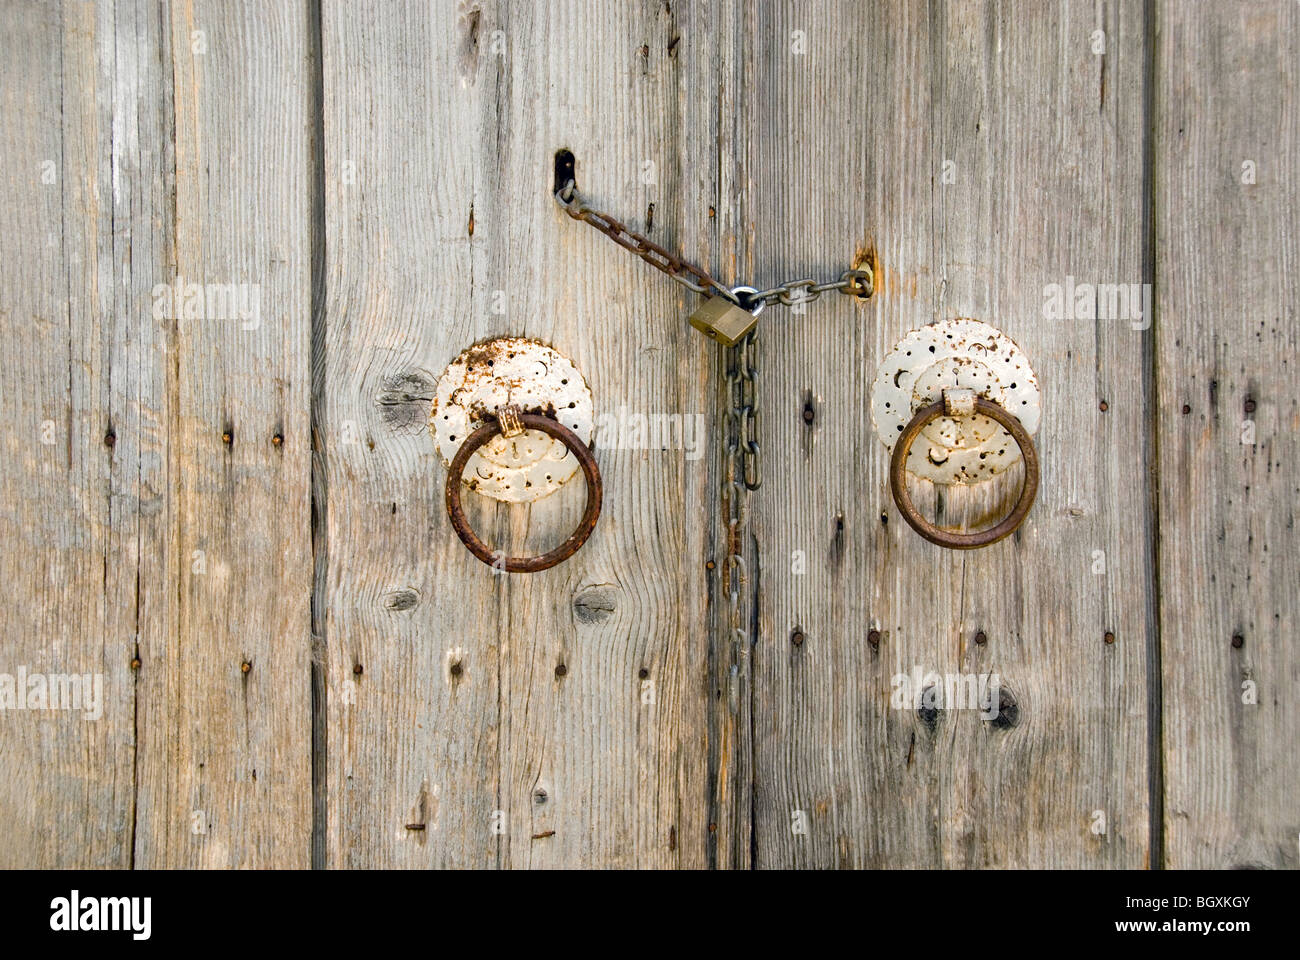 Old wooden doors with antique door furniture - Old Wooden Doors With Antique Door Furniture Stock Photo, Royalty